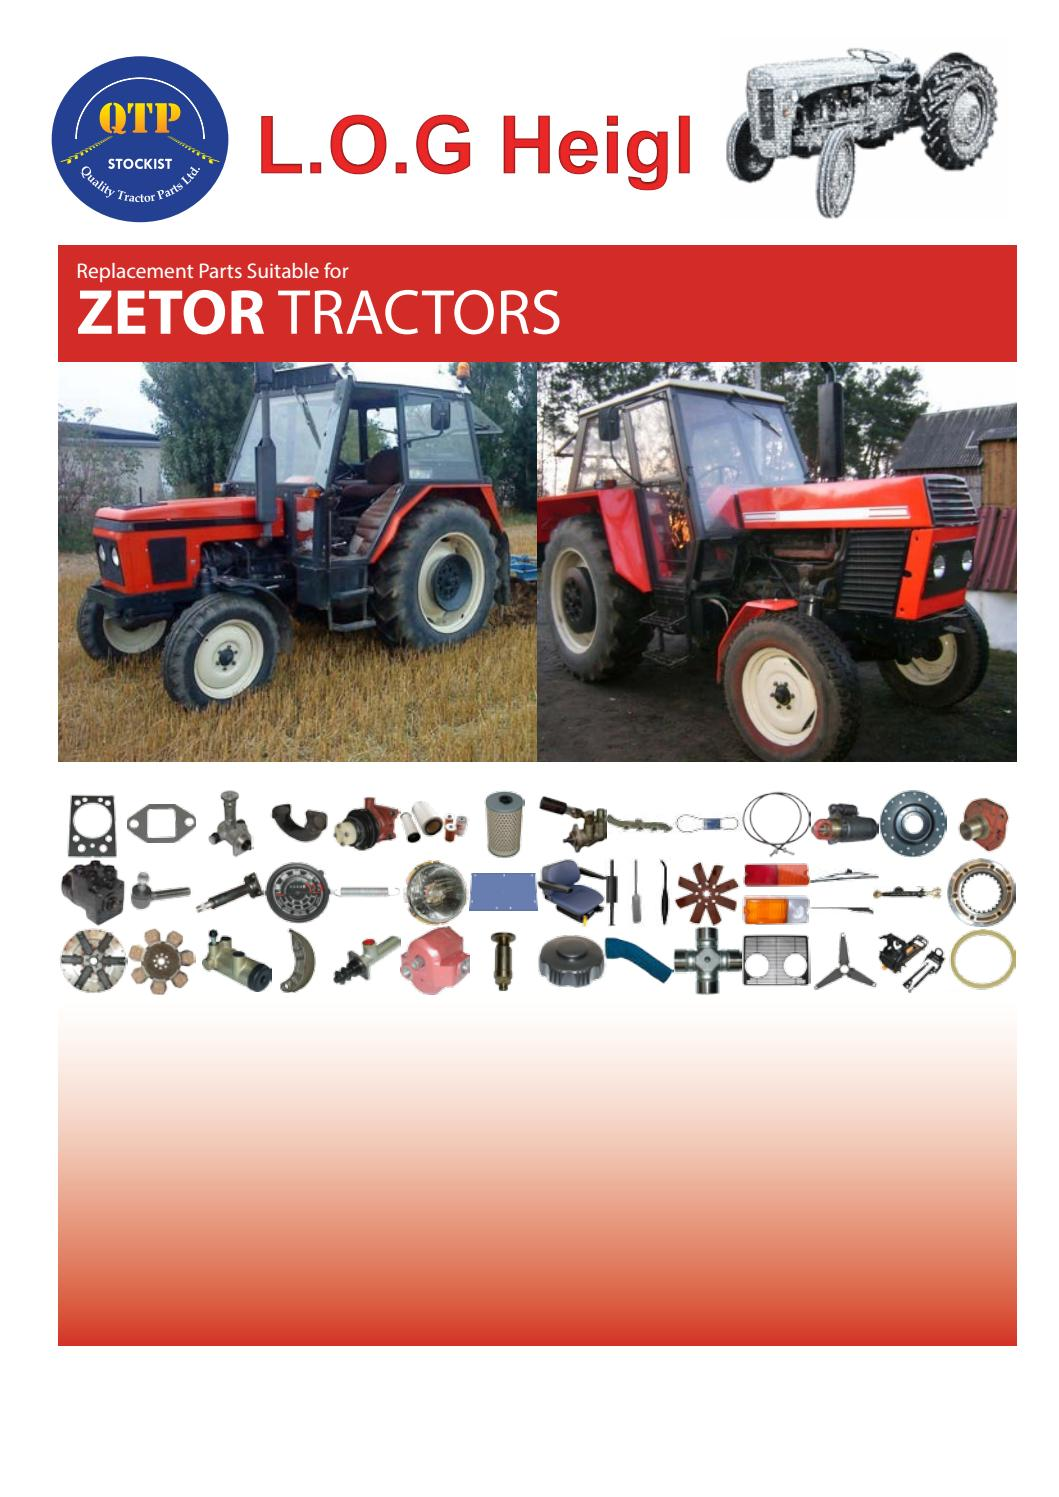 Zetor Tractor Replacement Parts : Zetor log heigl by quality tractor parts issuu